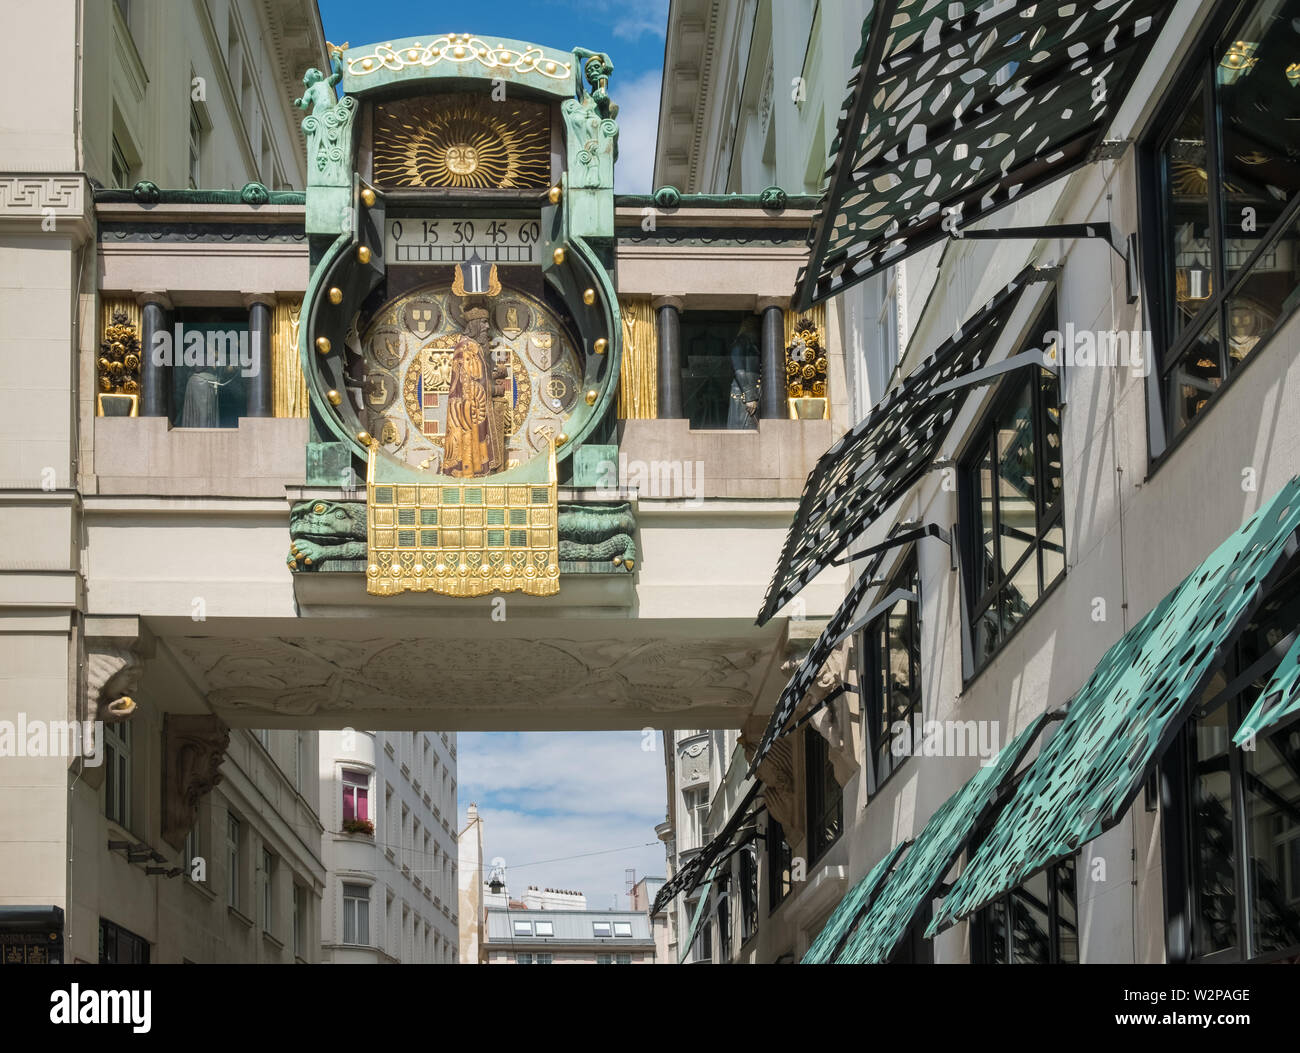 The Ankeruhr (Anchor clock), an Art Noveau mechanical clock built in 1914, that forms a bridge between two buildings, Hoher Markt, Vienna, Austria. Stock Photo